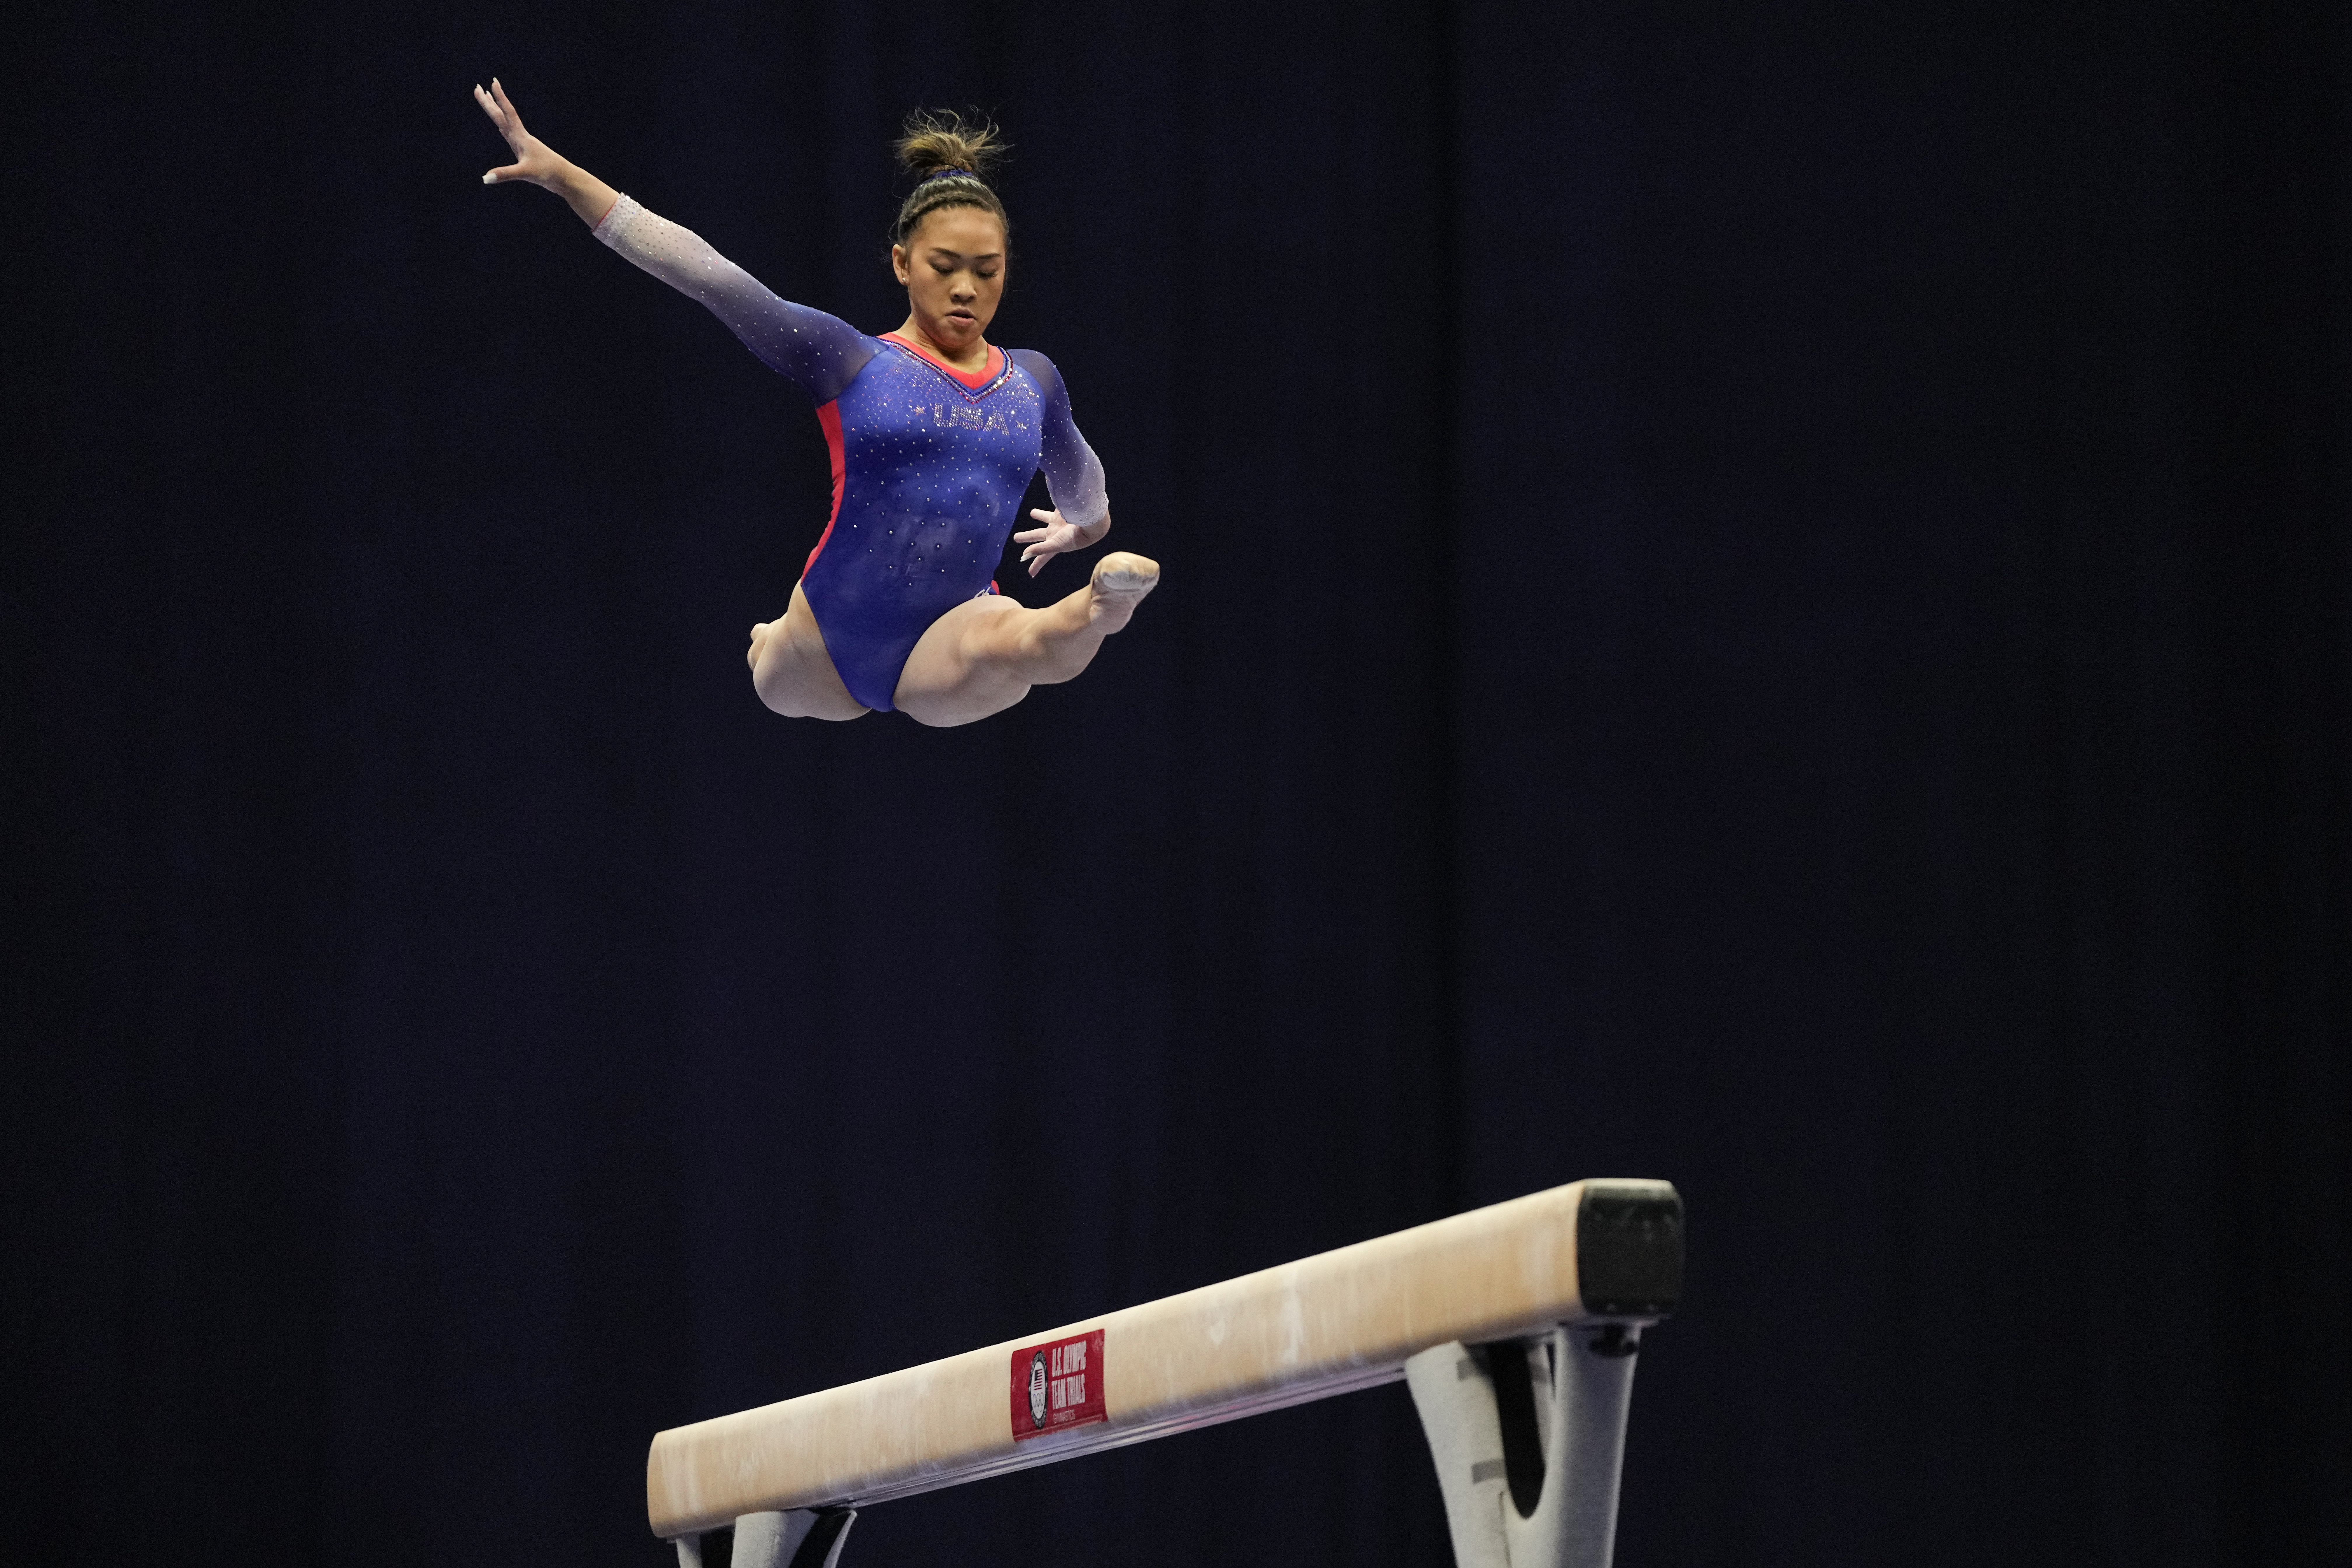 Suni Lee competes on the balance beam during the U.S. Olympic Gymnastics Trials on June 25 in in St. Louis.